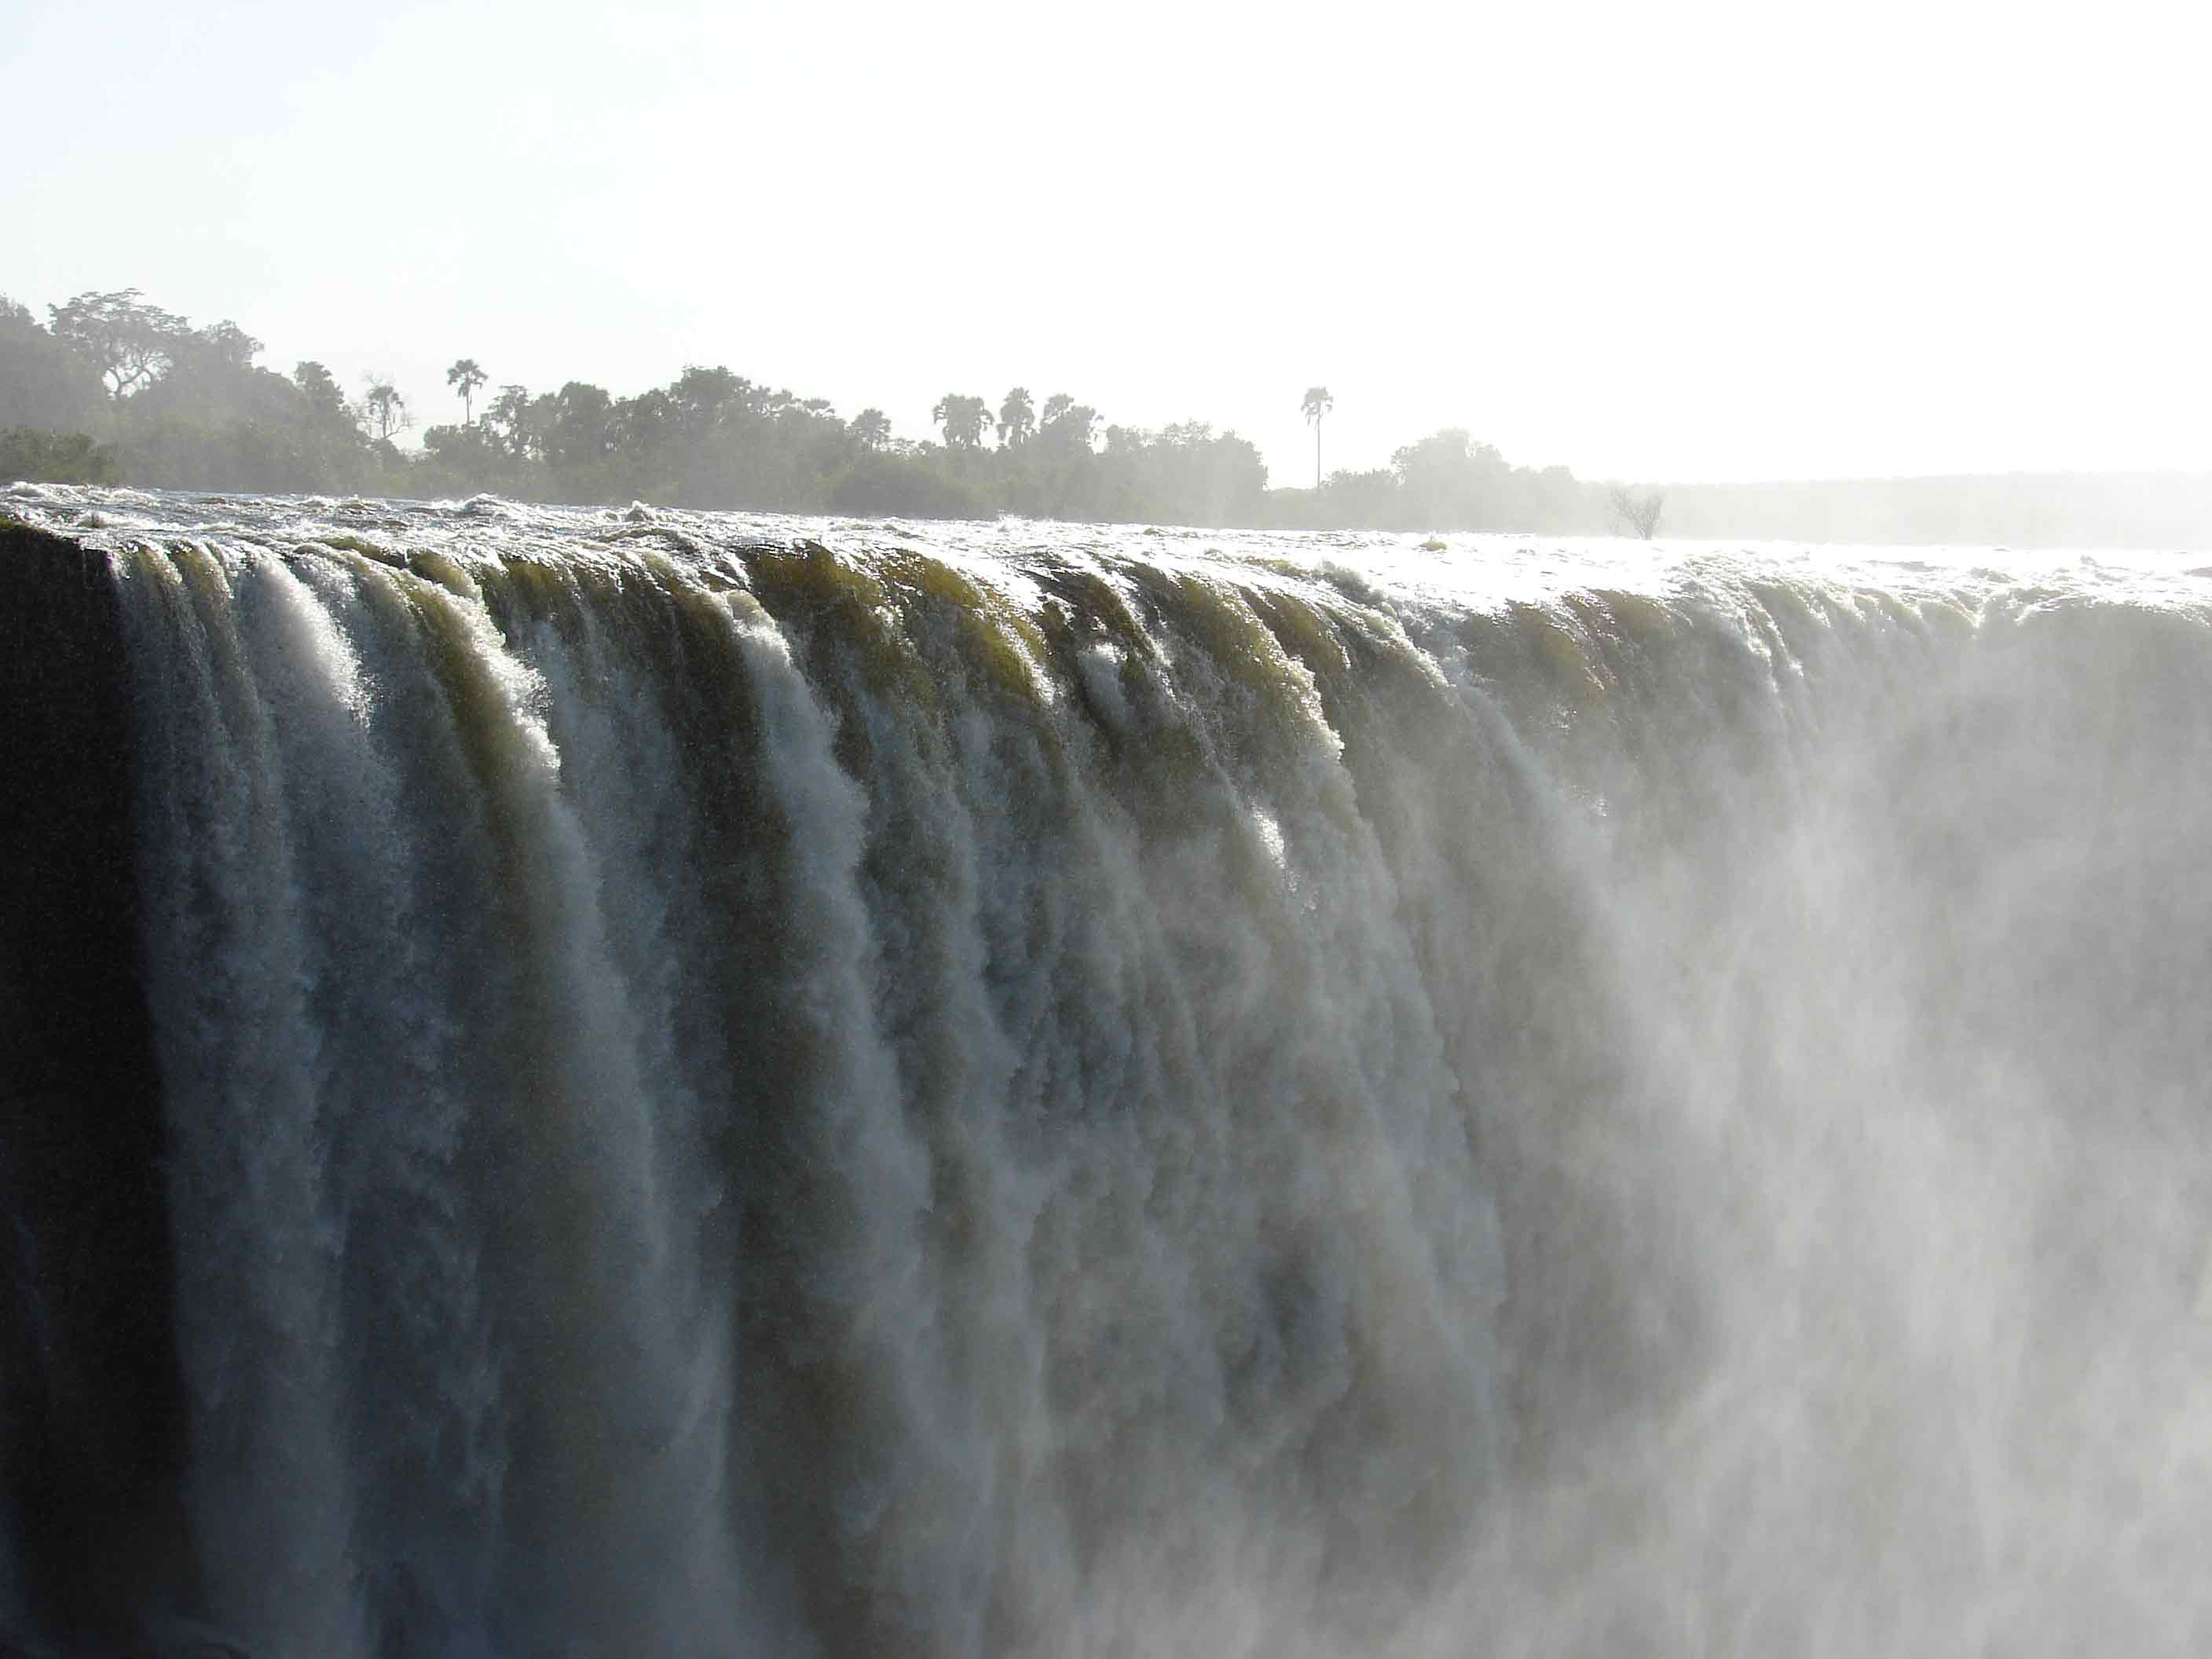 photo: Victoria Falls © Peter Kuthan